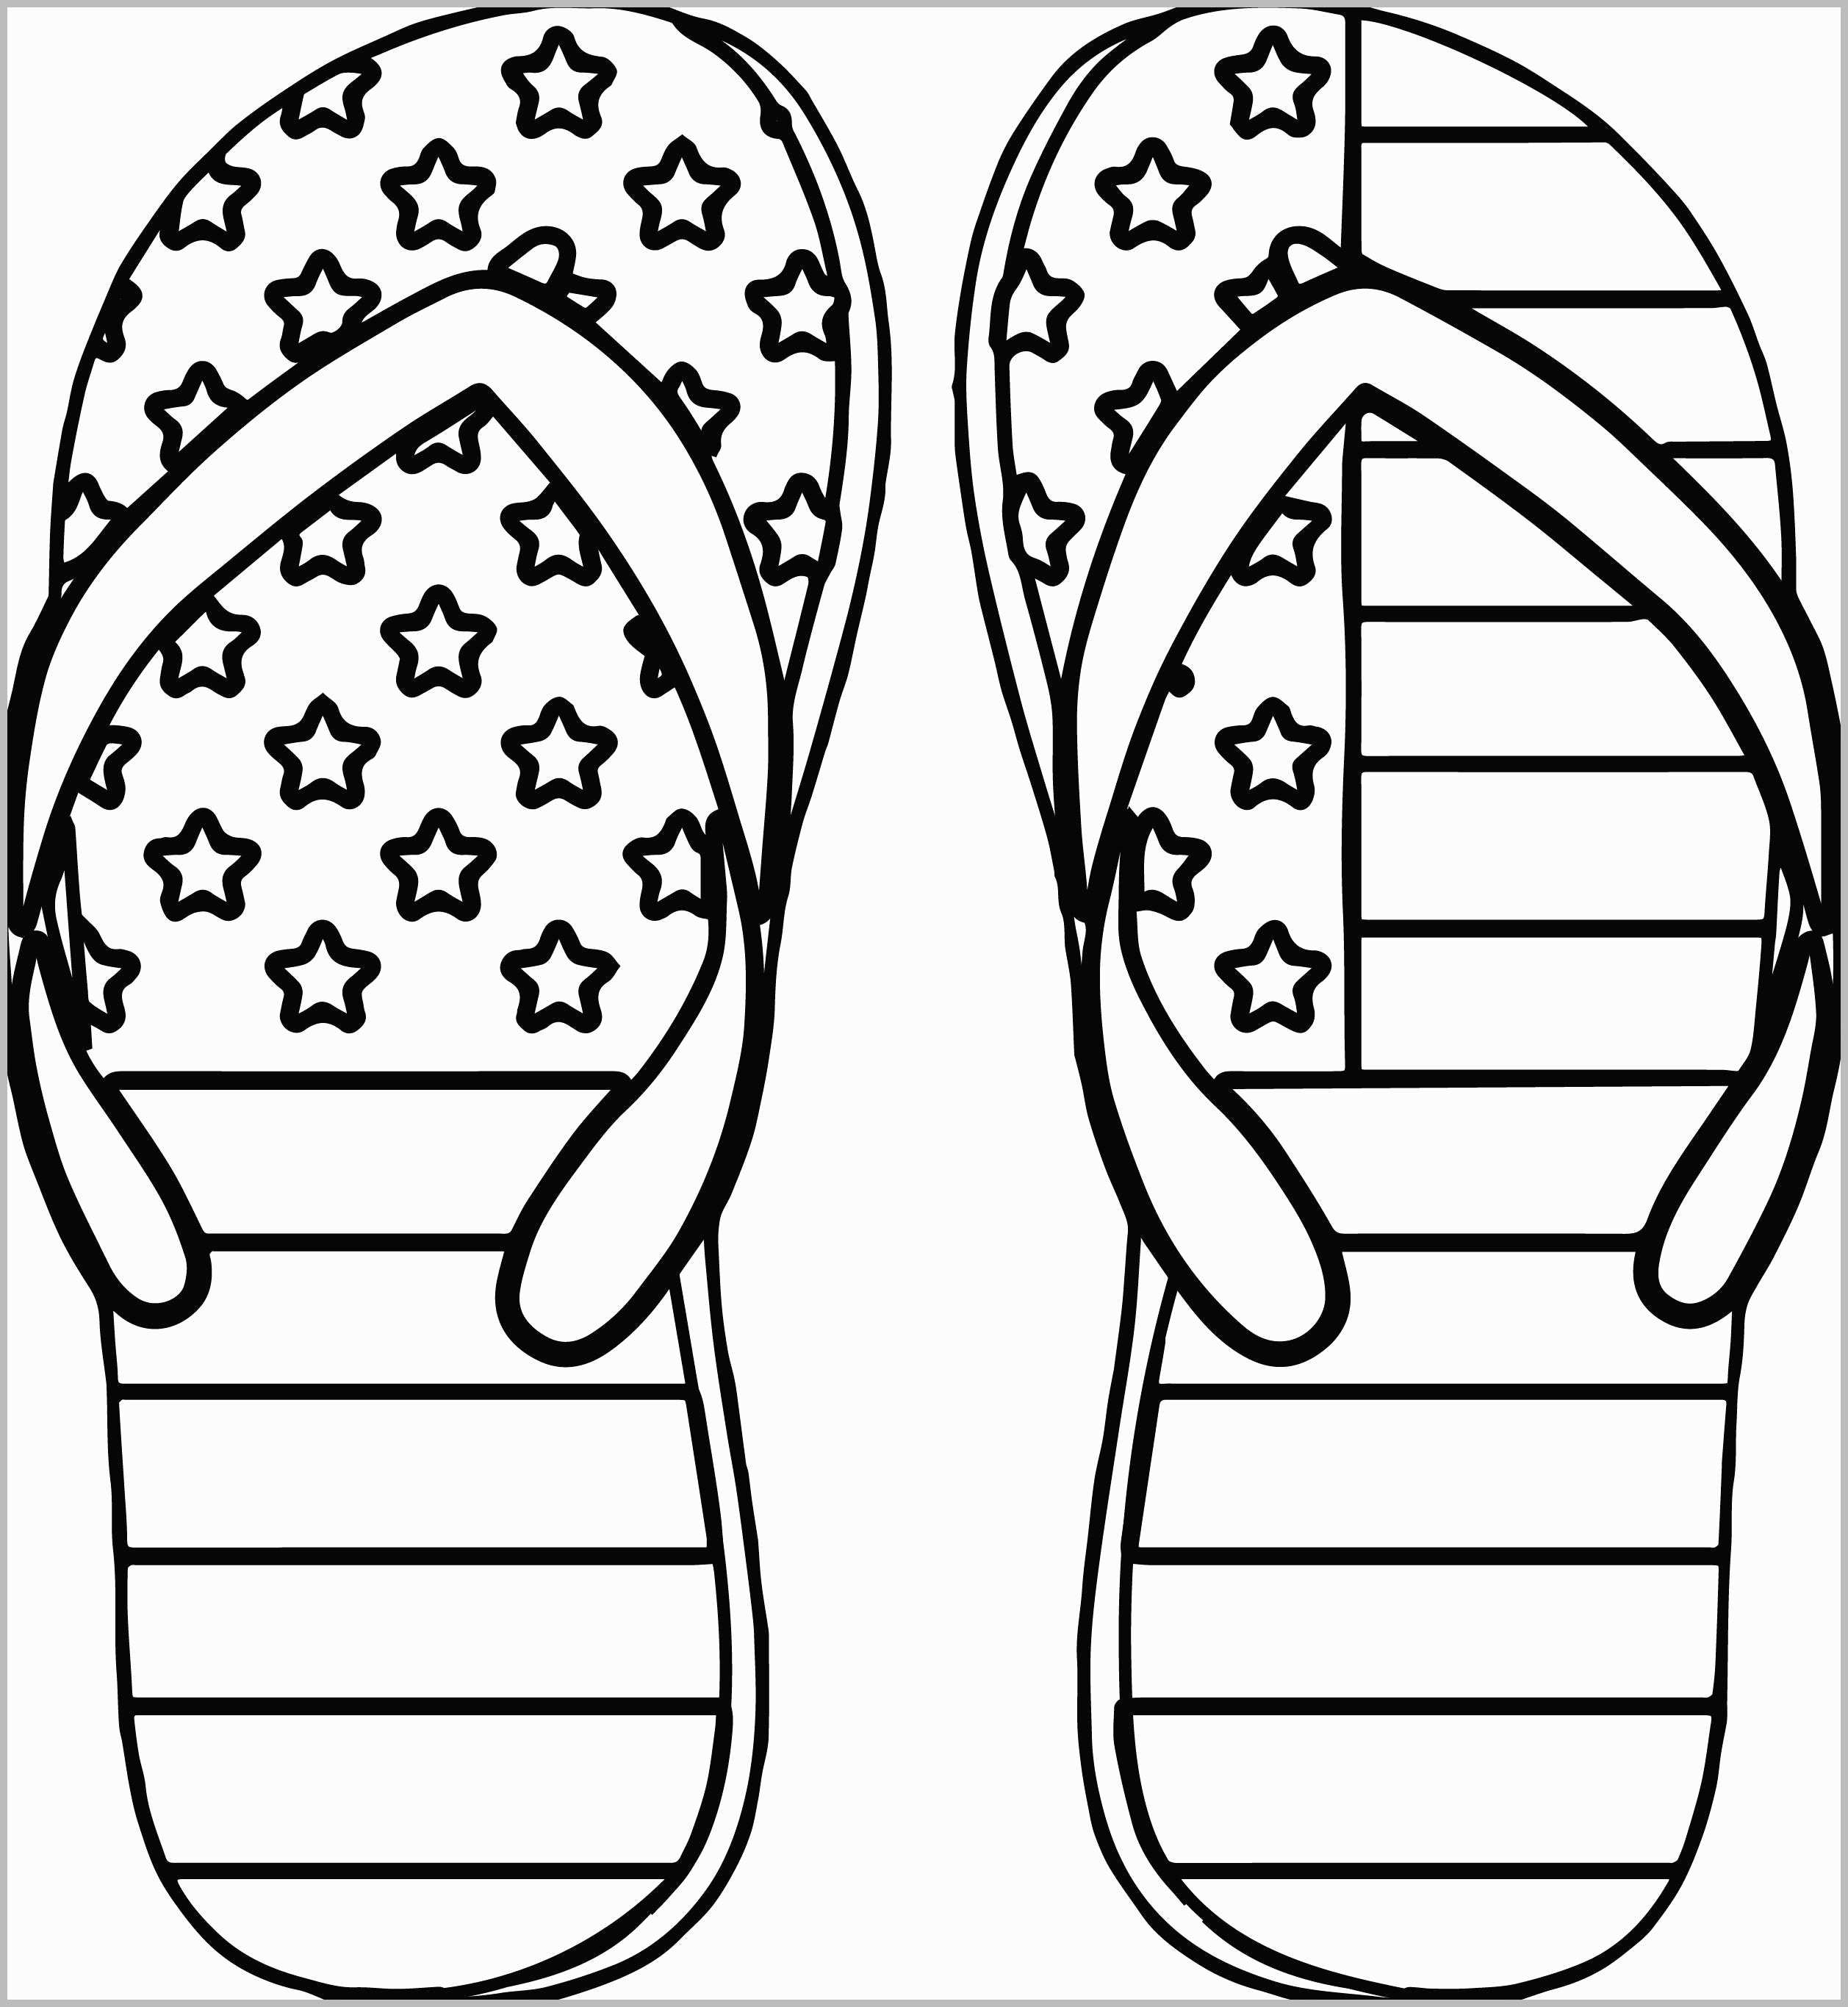 Flip Flop Coloring Pages Flip Flop Coloring Pages Free Printable 8 - Free Printable 4Th Of July Coloring Pages